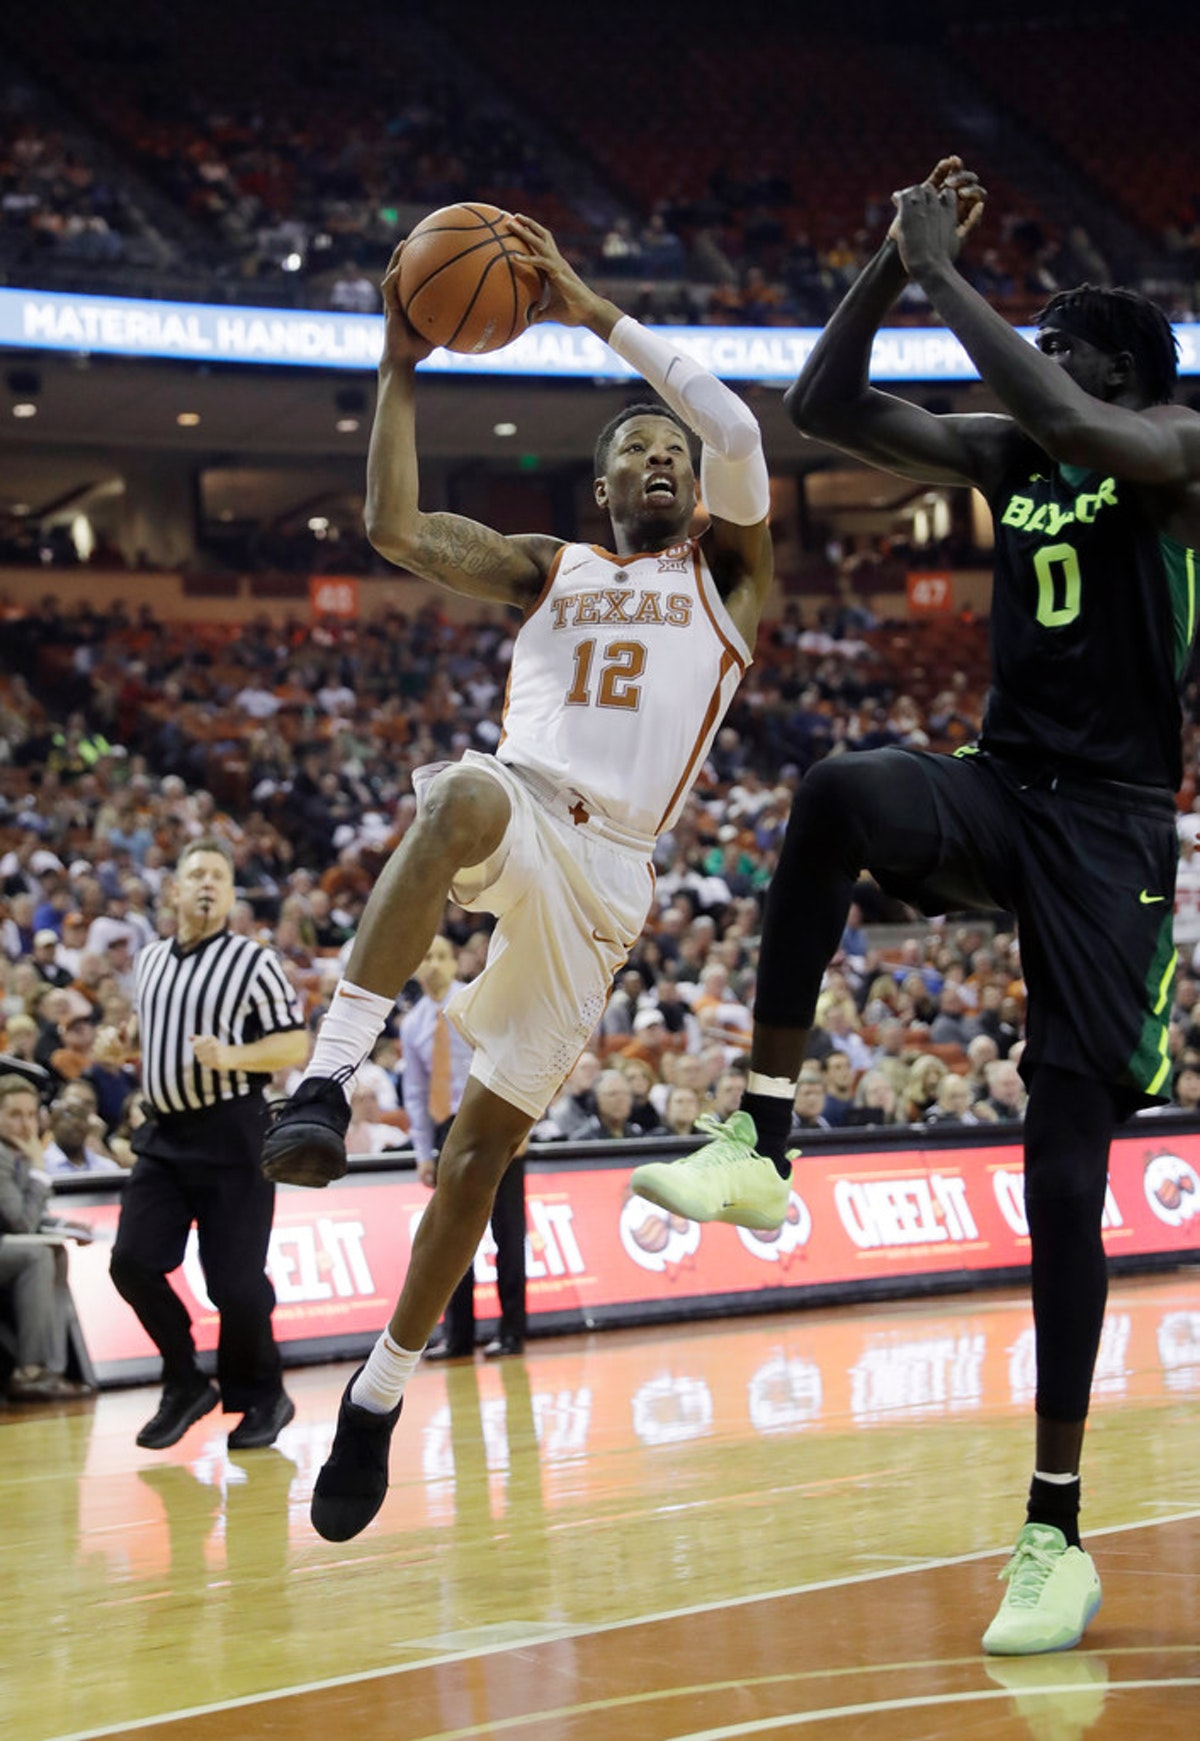 1518884779-baylor-texas-basketball